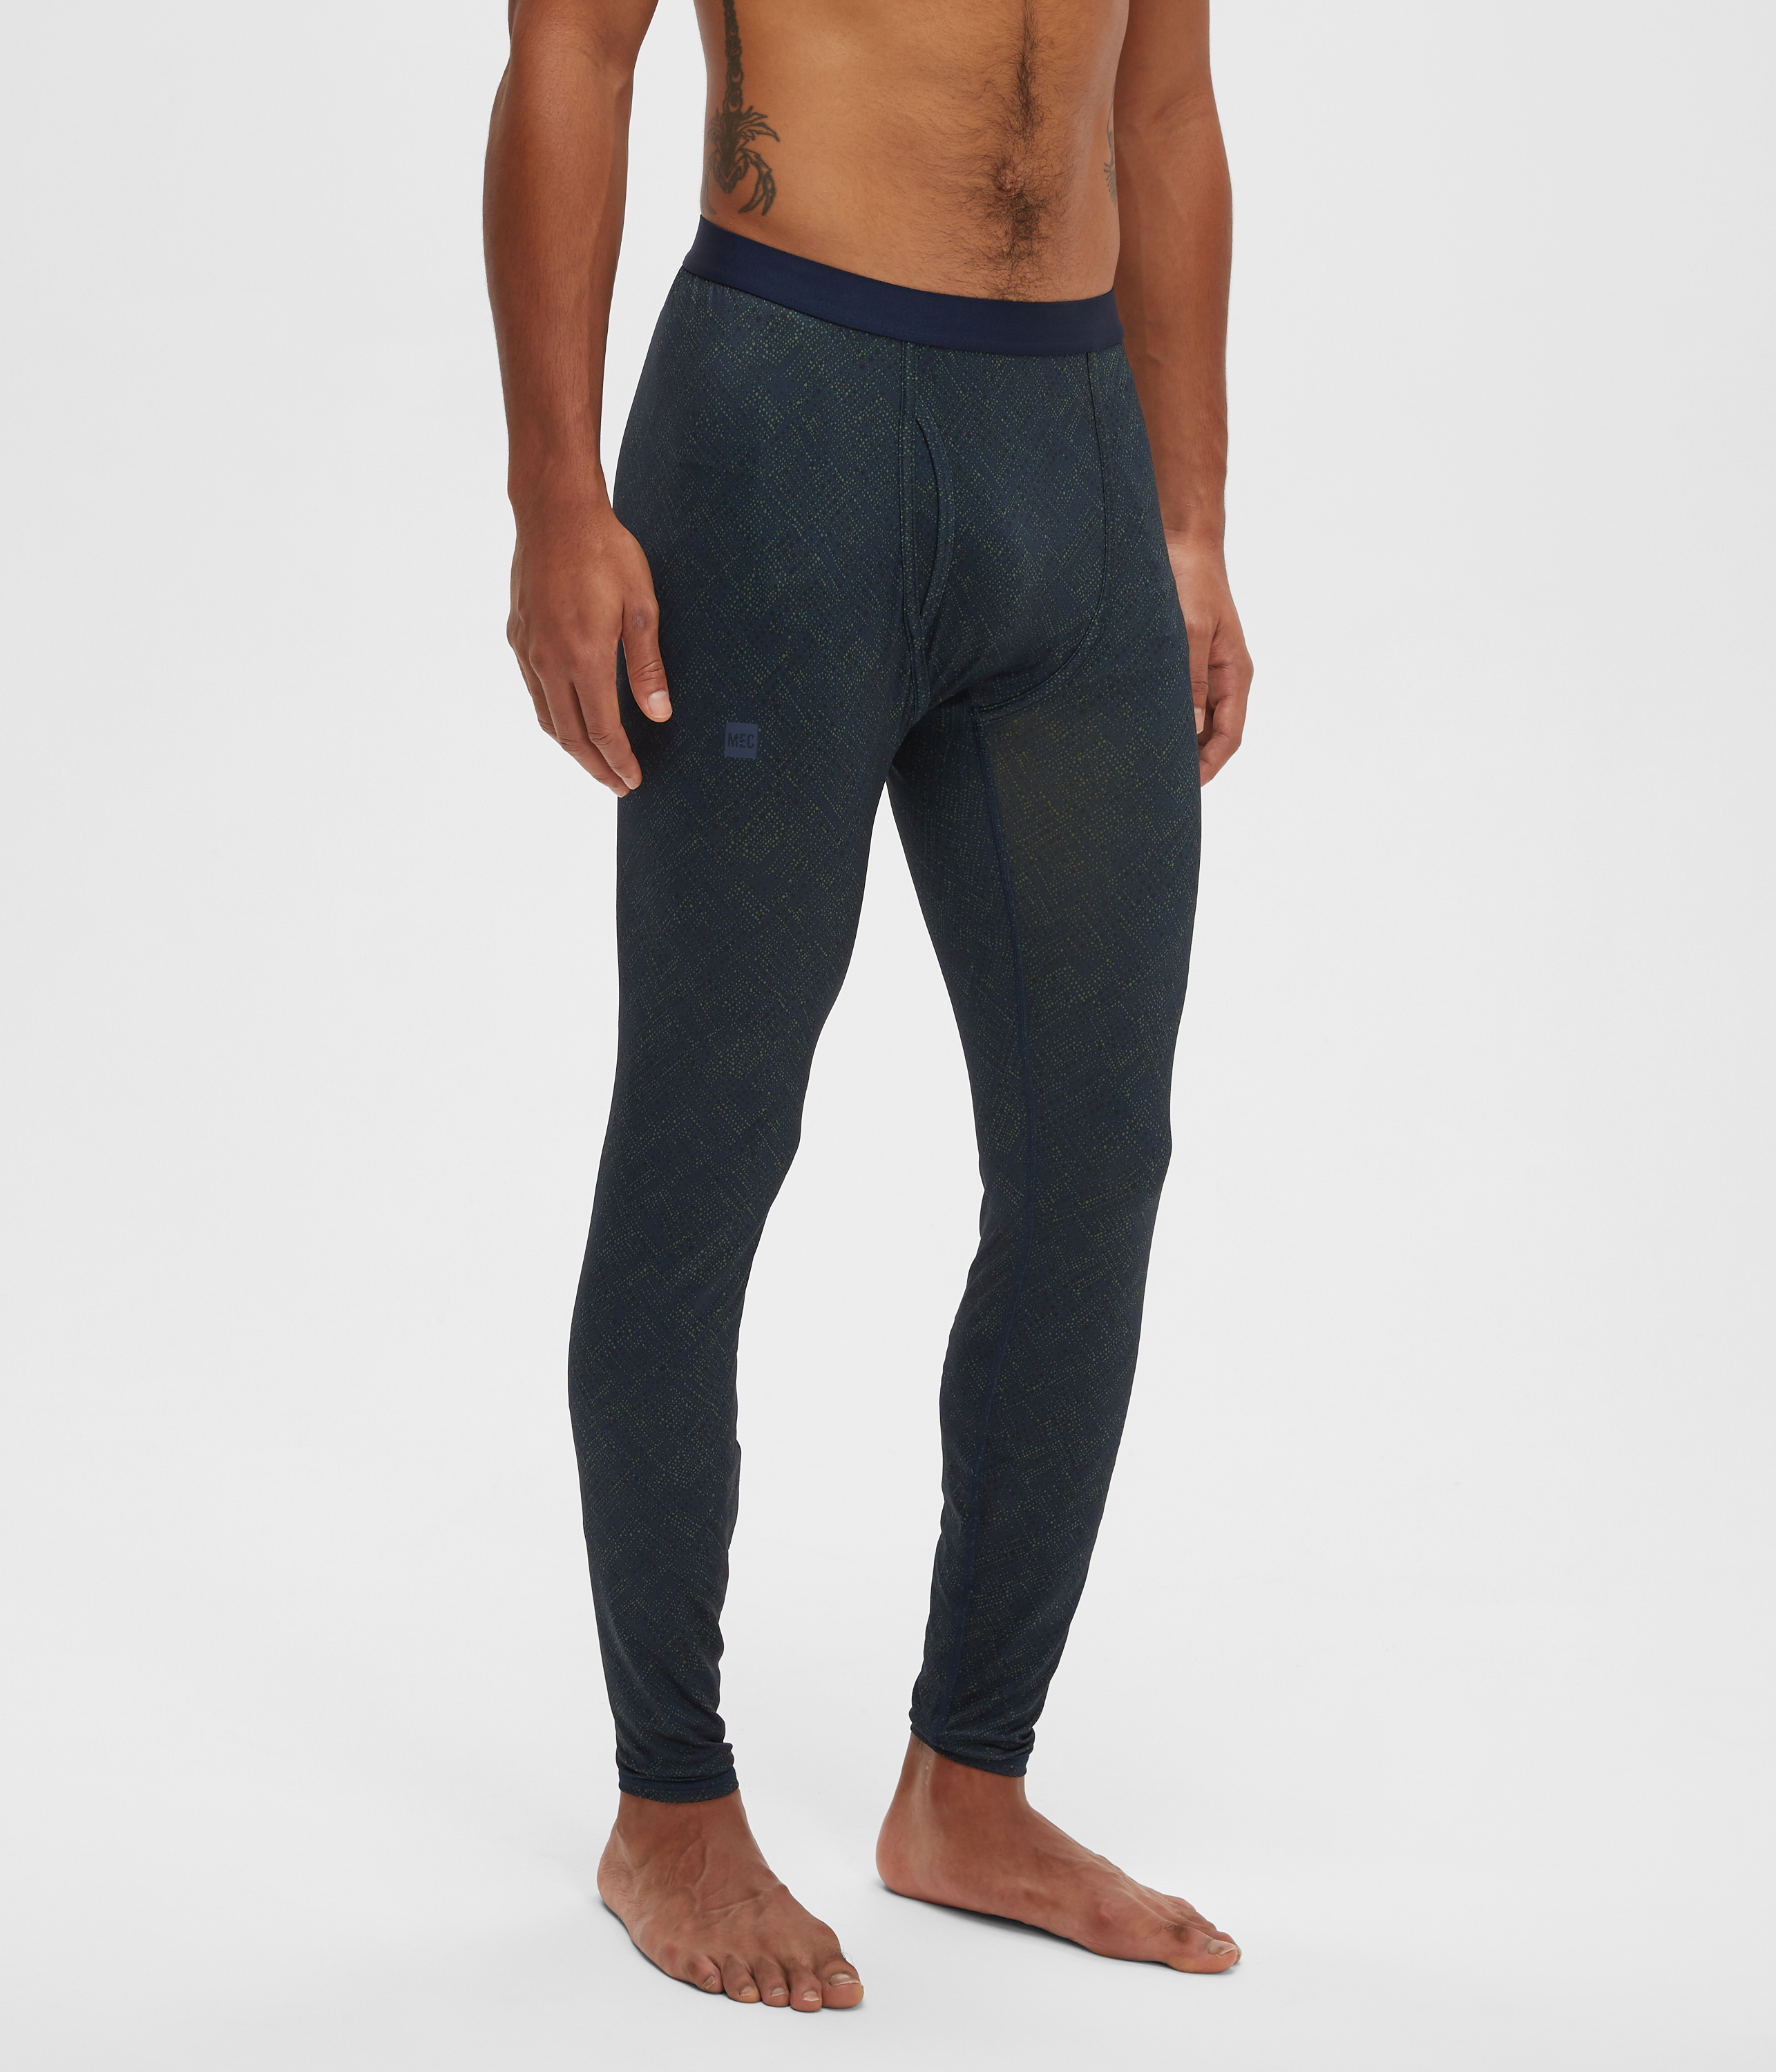 f32f29799 MEC T1 Long Johns - Men s